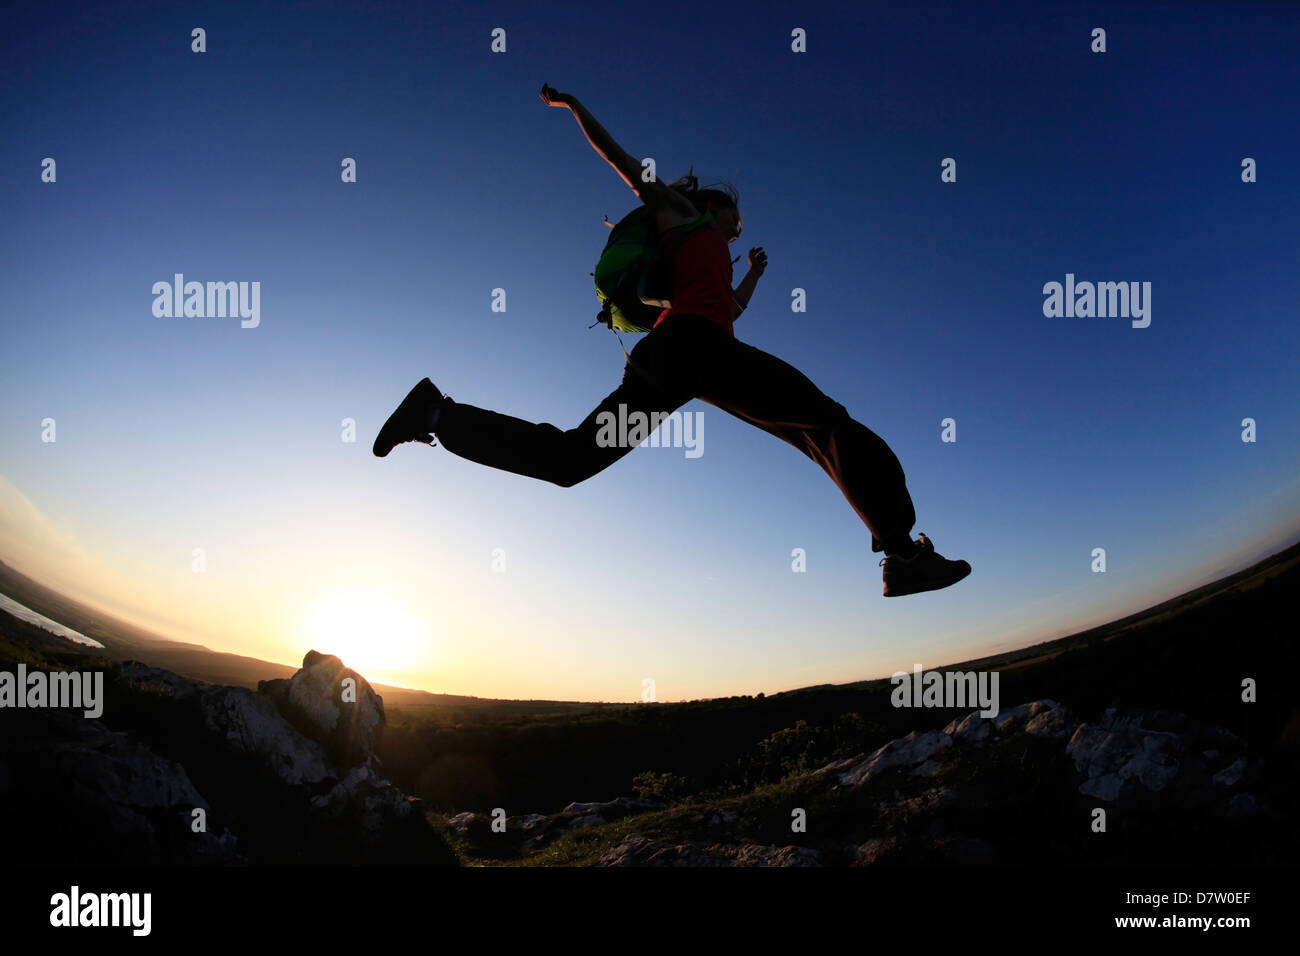 A woman runs in the Mendip Hills, Somerset, England, United Kingdom - Stock Image